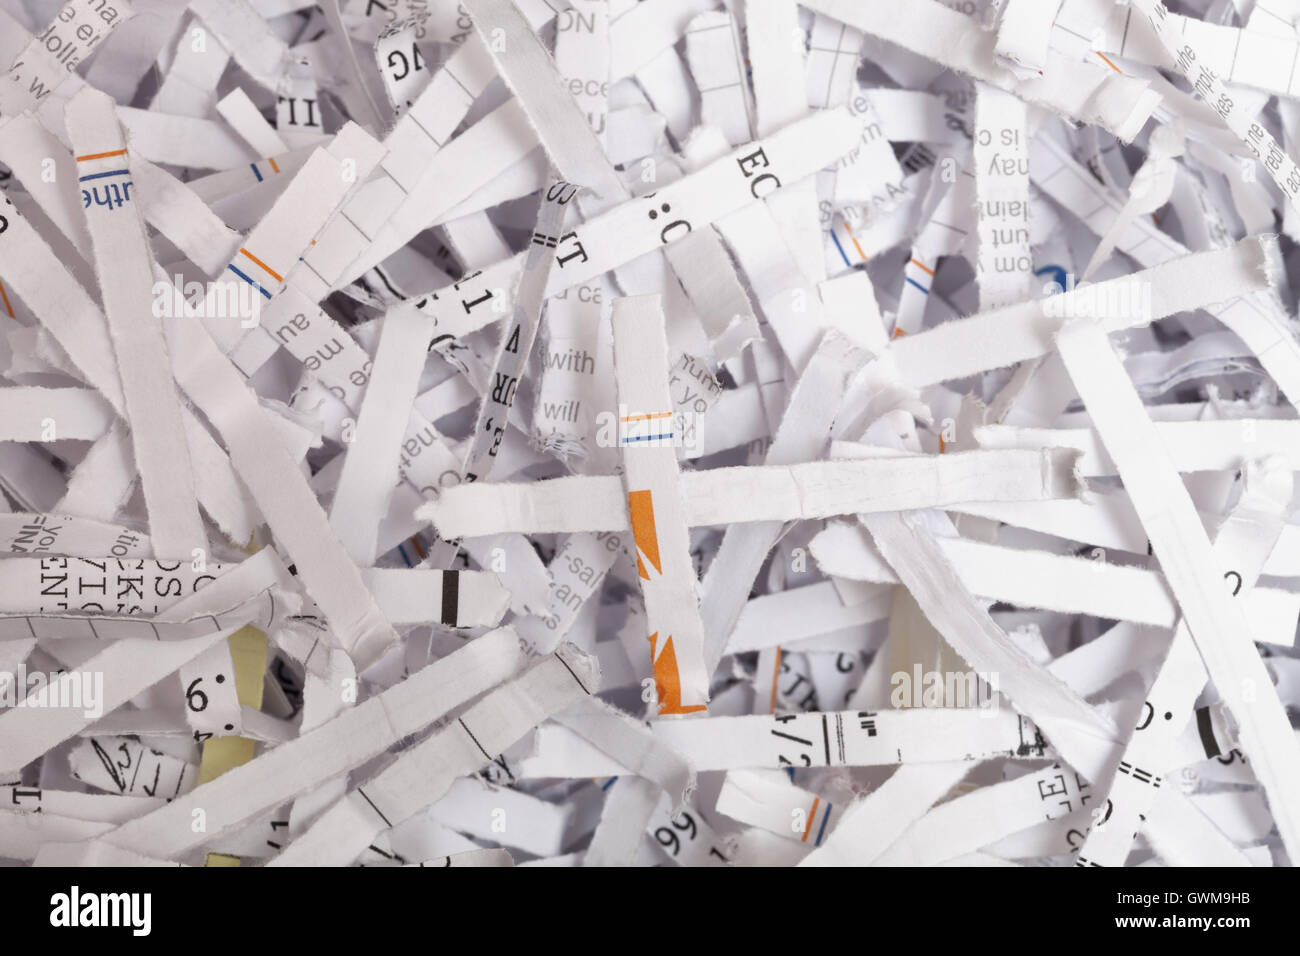 Full frame high angle view of shredded paper documents - Stock Image